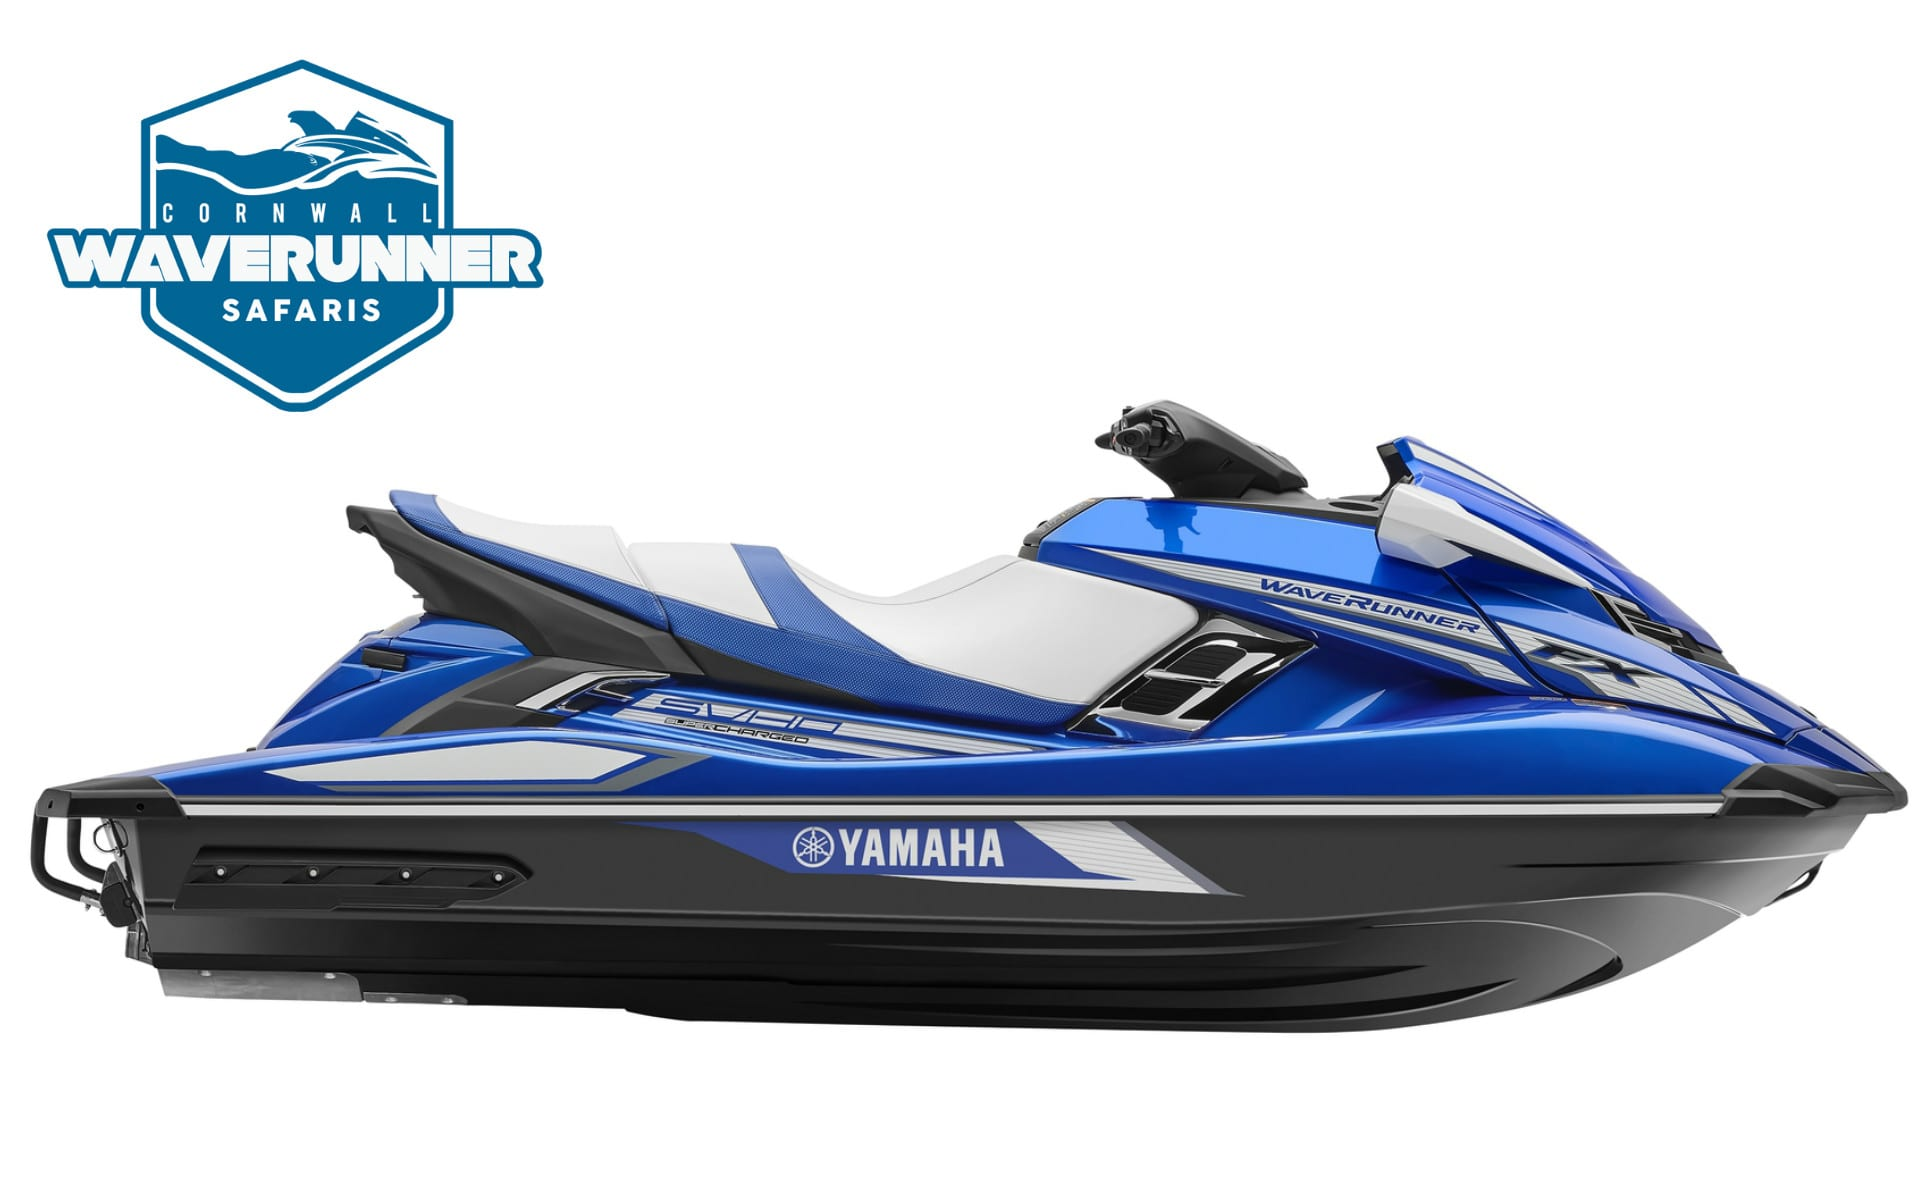 Yamaha Waverunner Uk